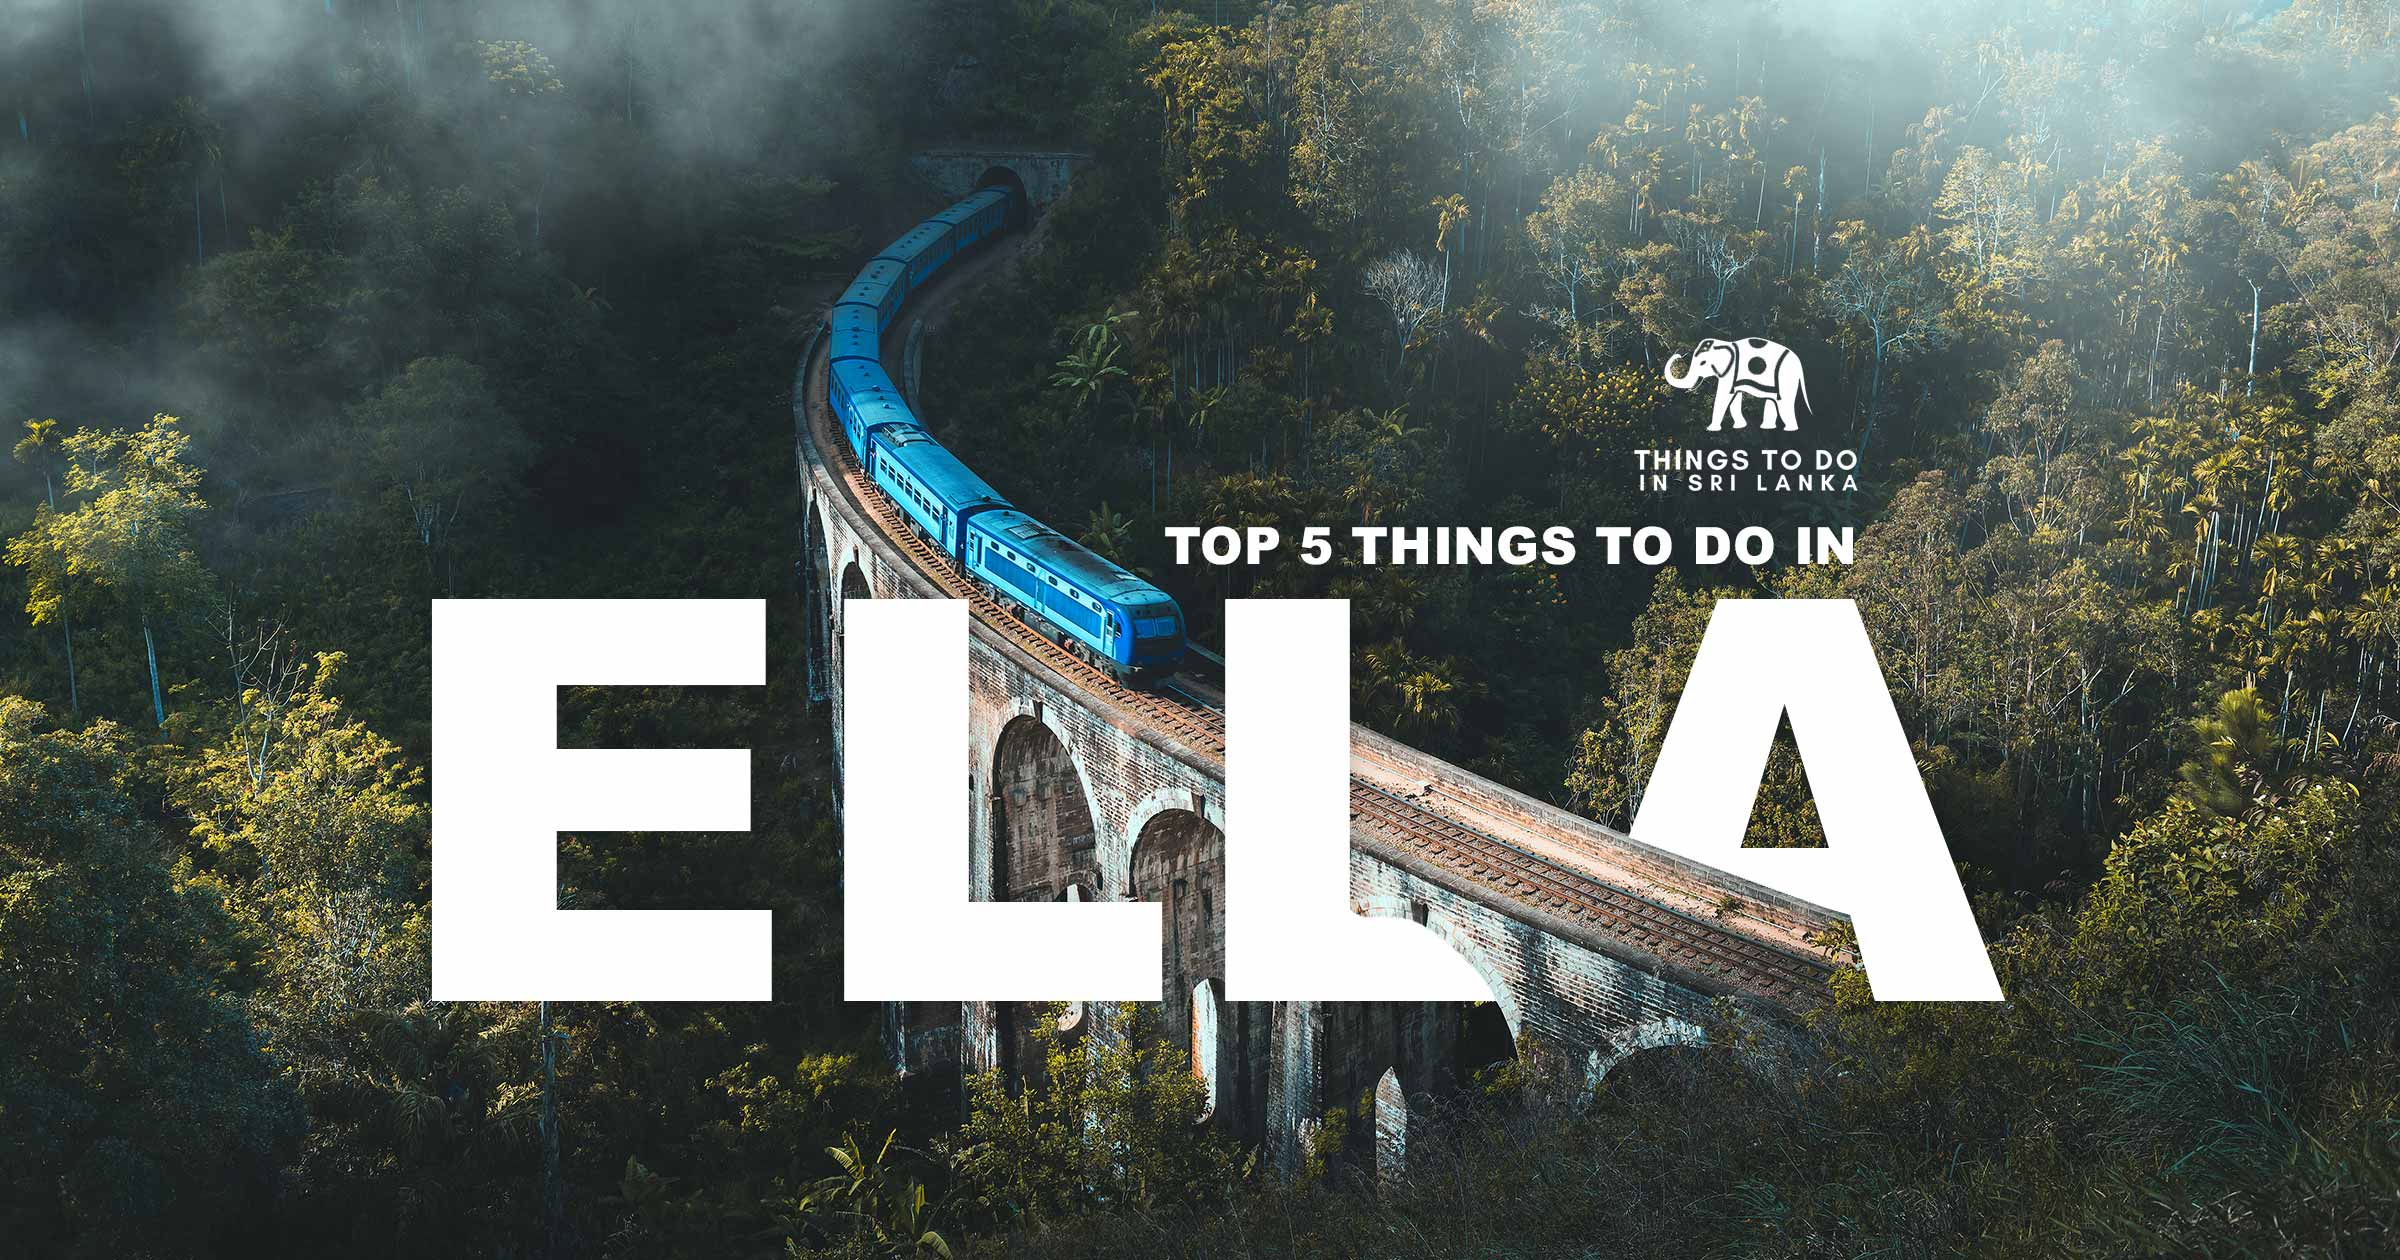 Top 5 things to do in Ella